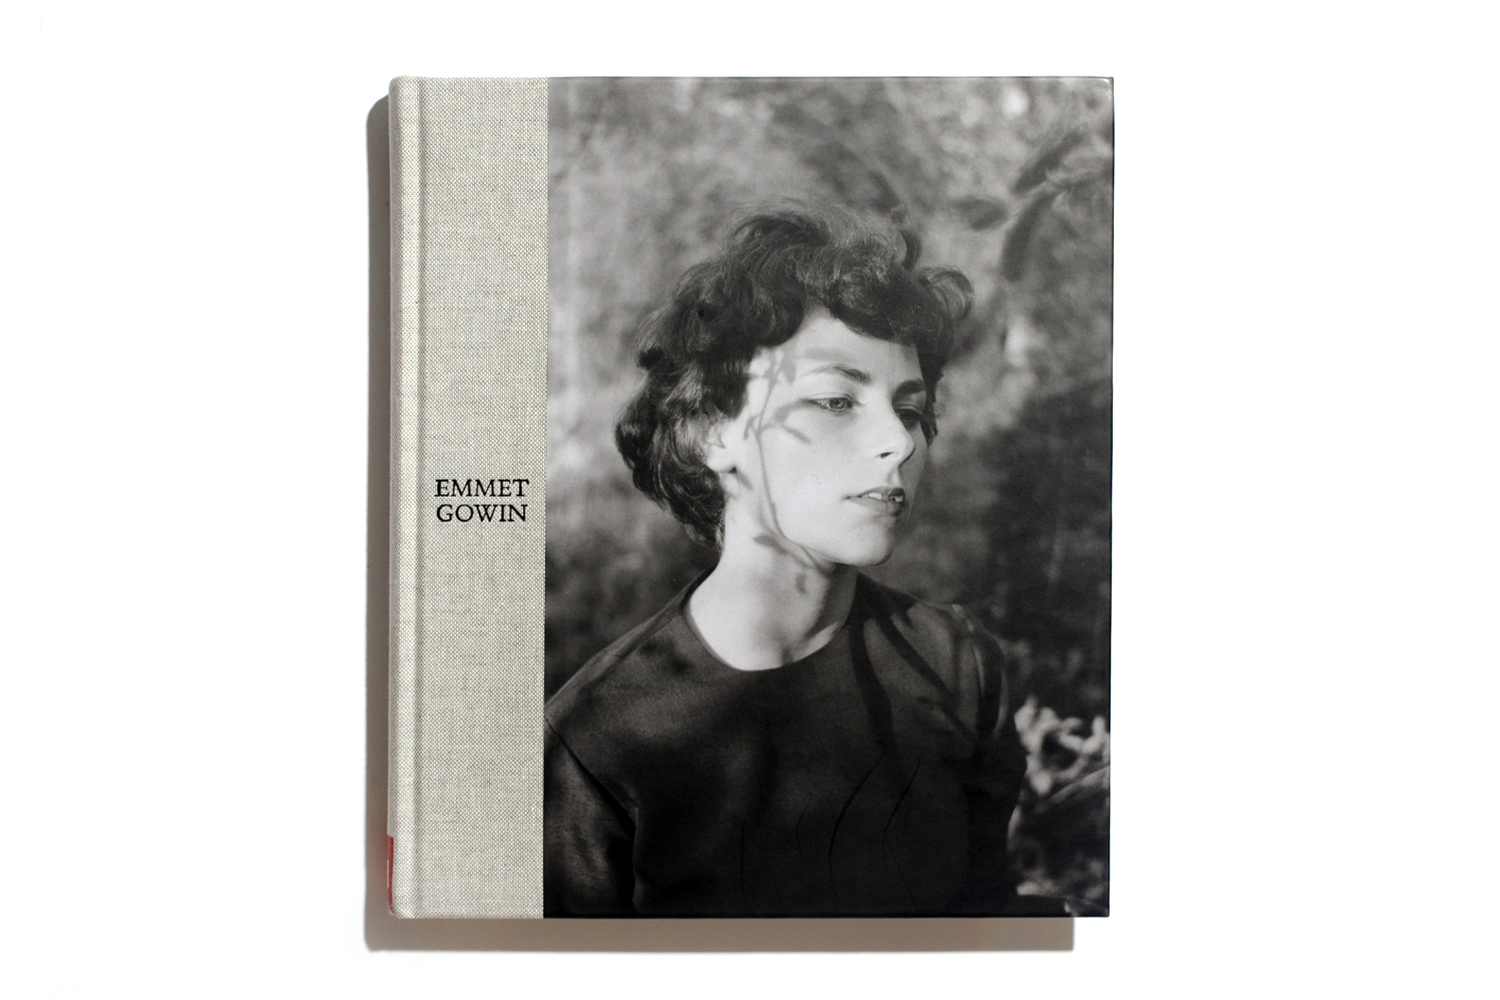 Emmet Gowin by Emmet Gowin, published by Aperture, selected by Phil Bicker, senior photo editor, TIME.